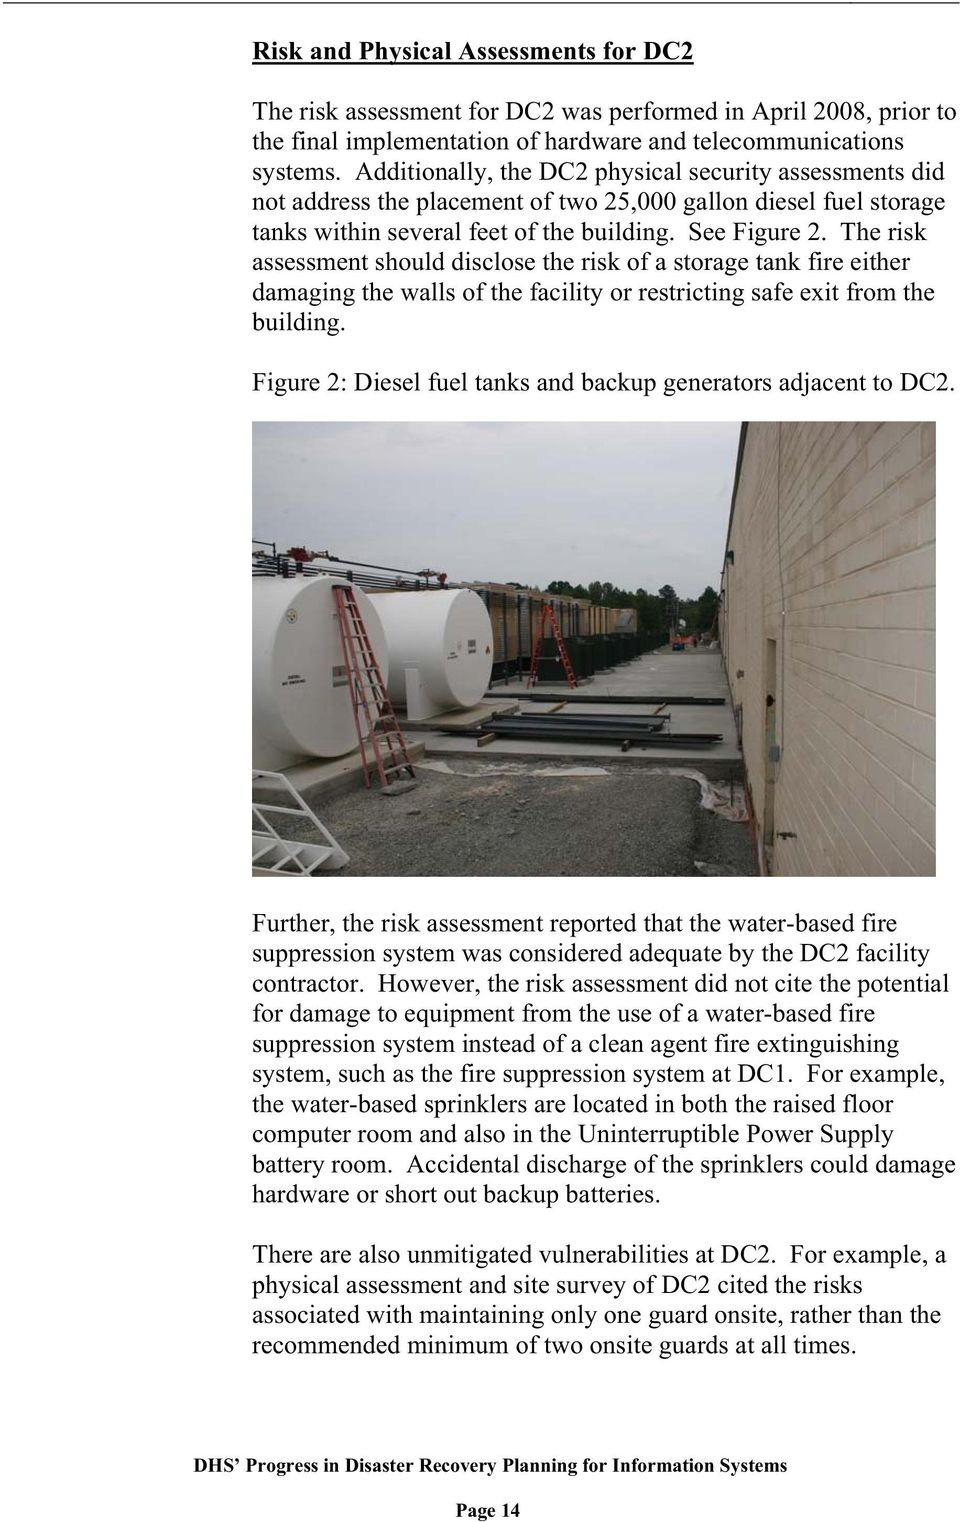 The risk assessment should disclose the risk of a storage tank fire either damaging the walls of the facility or restricting safe exit from the building.